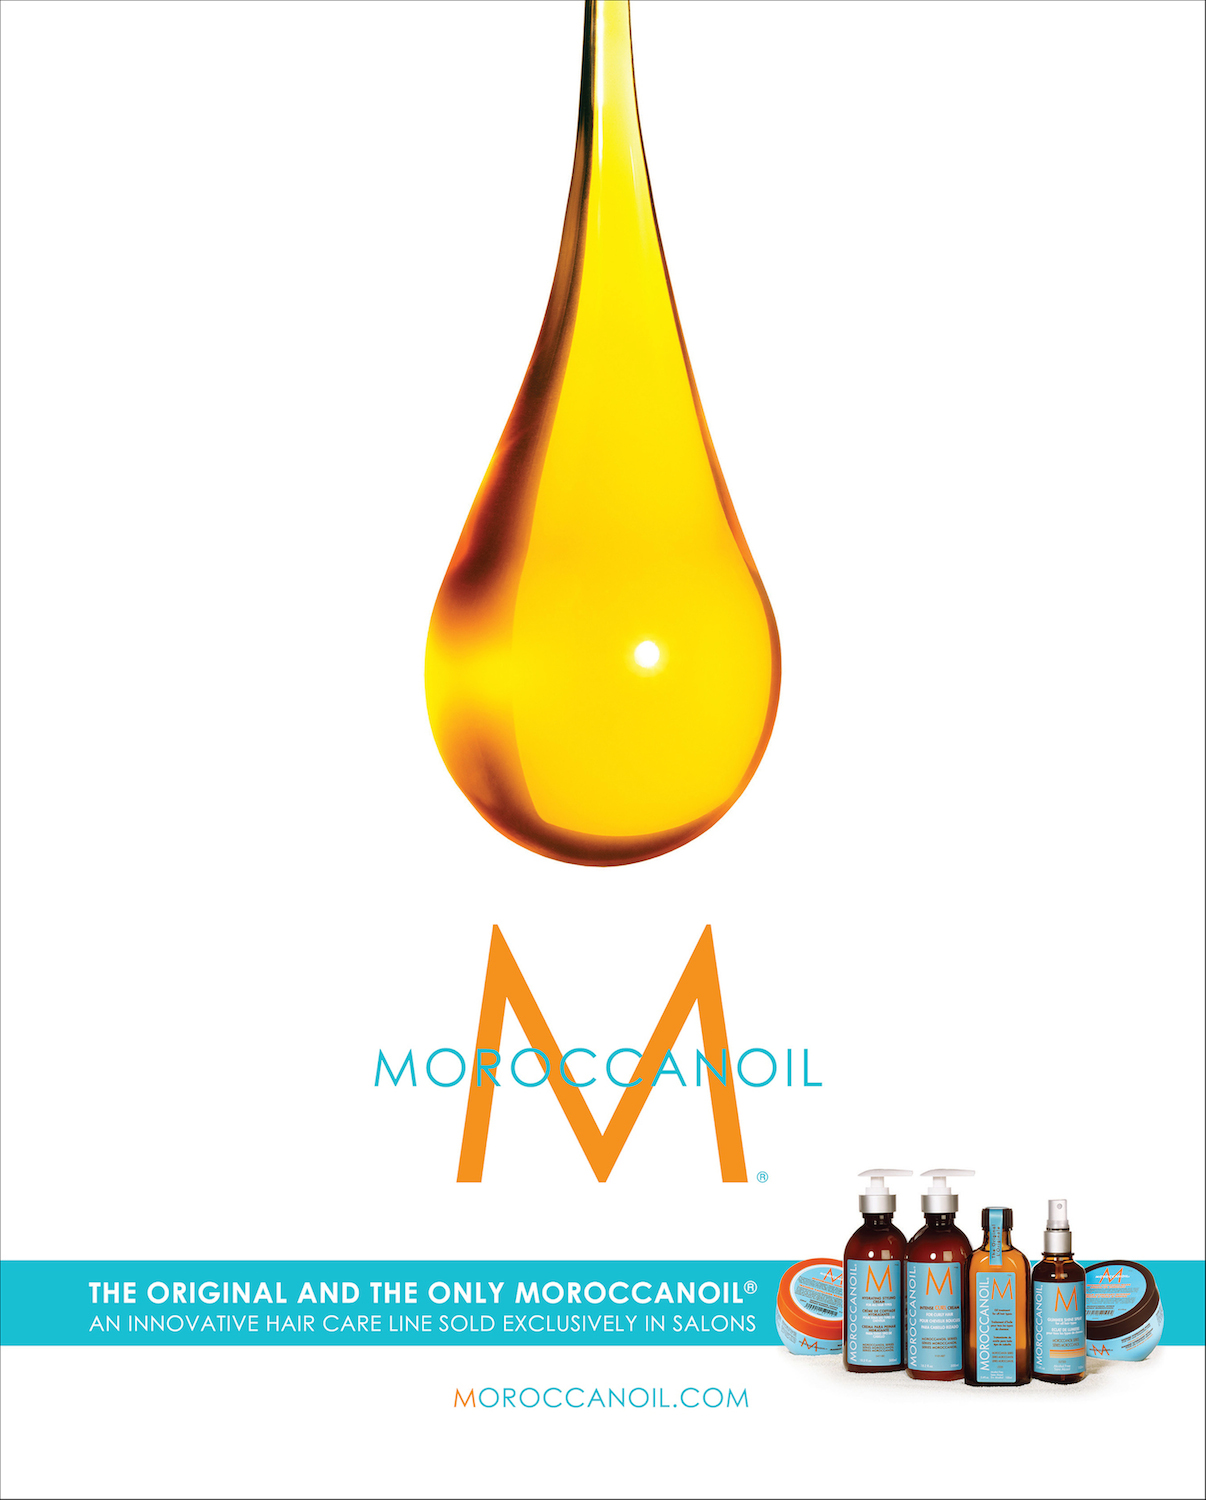 57 Moroccanoil International ad.jpg